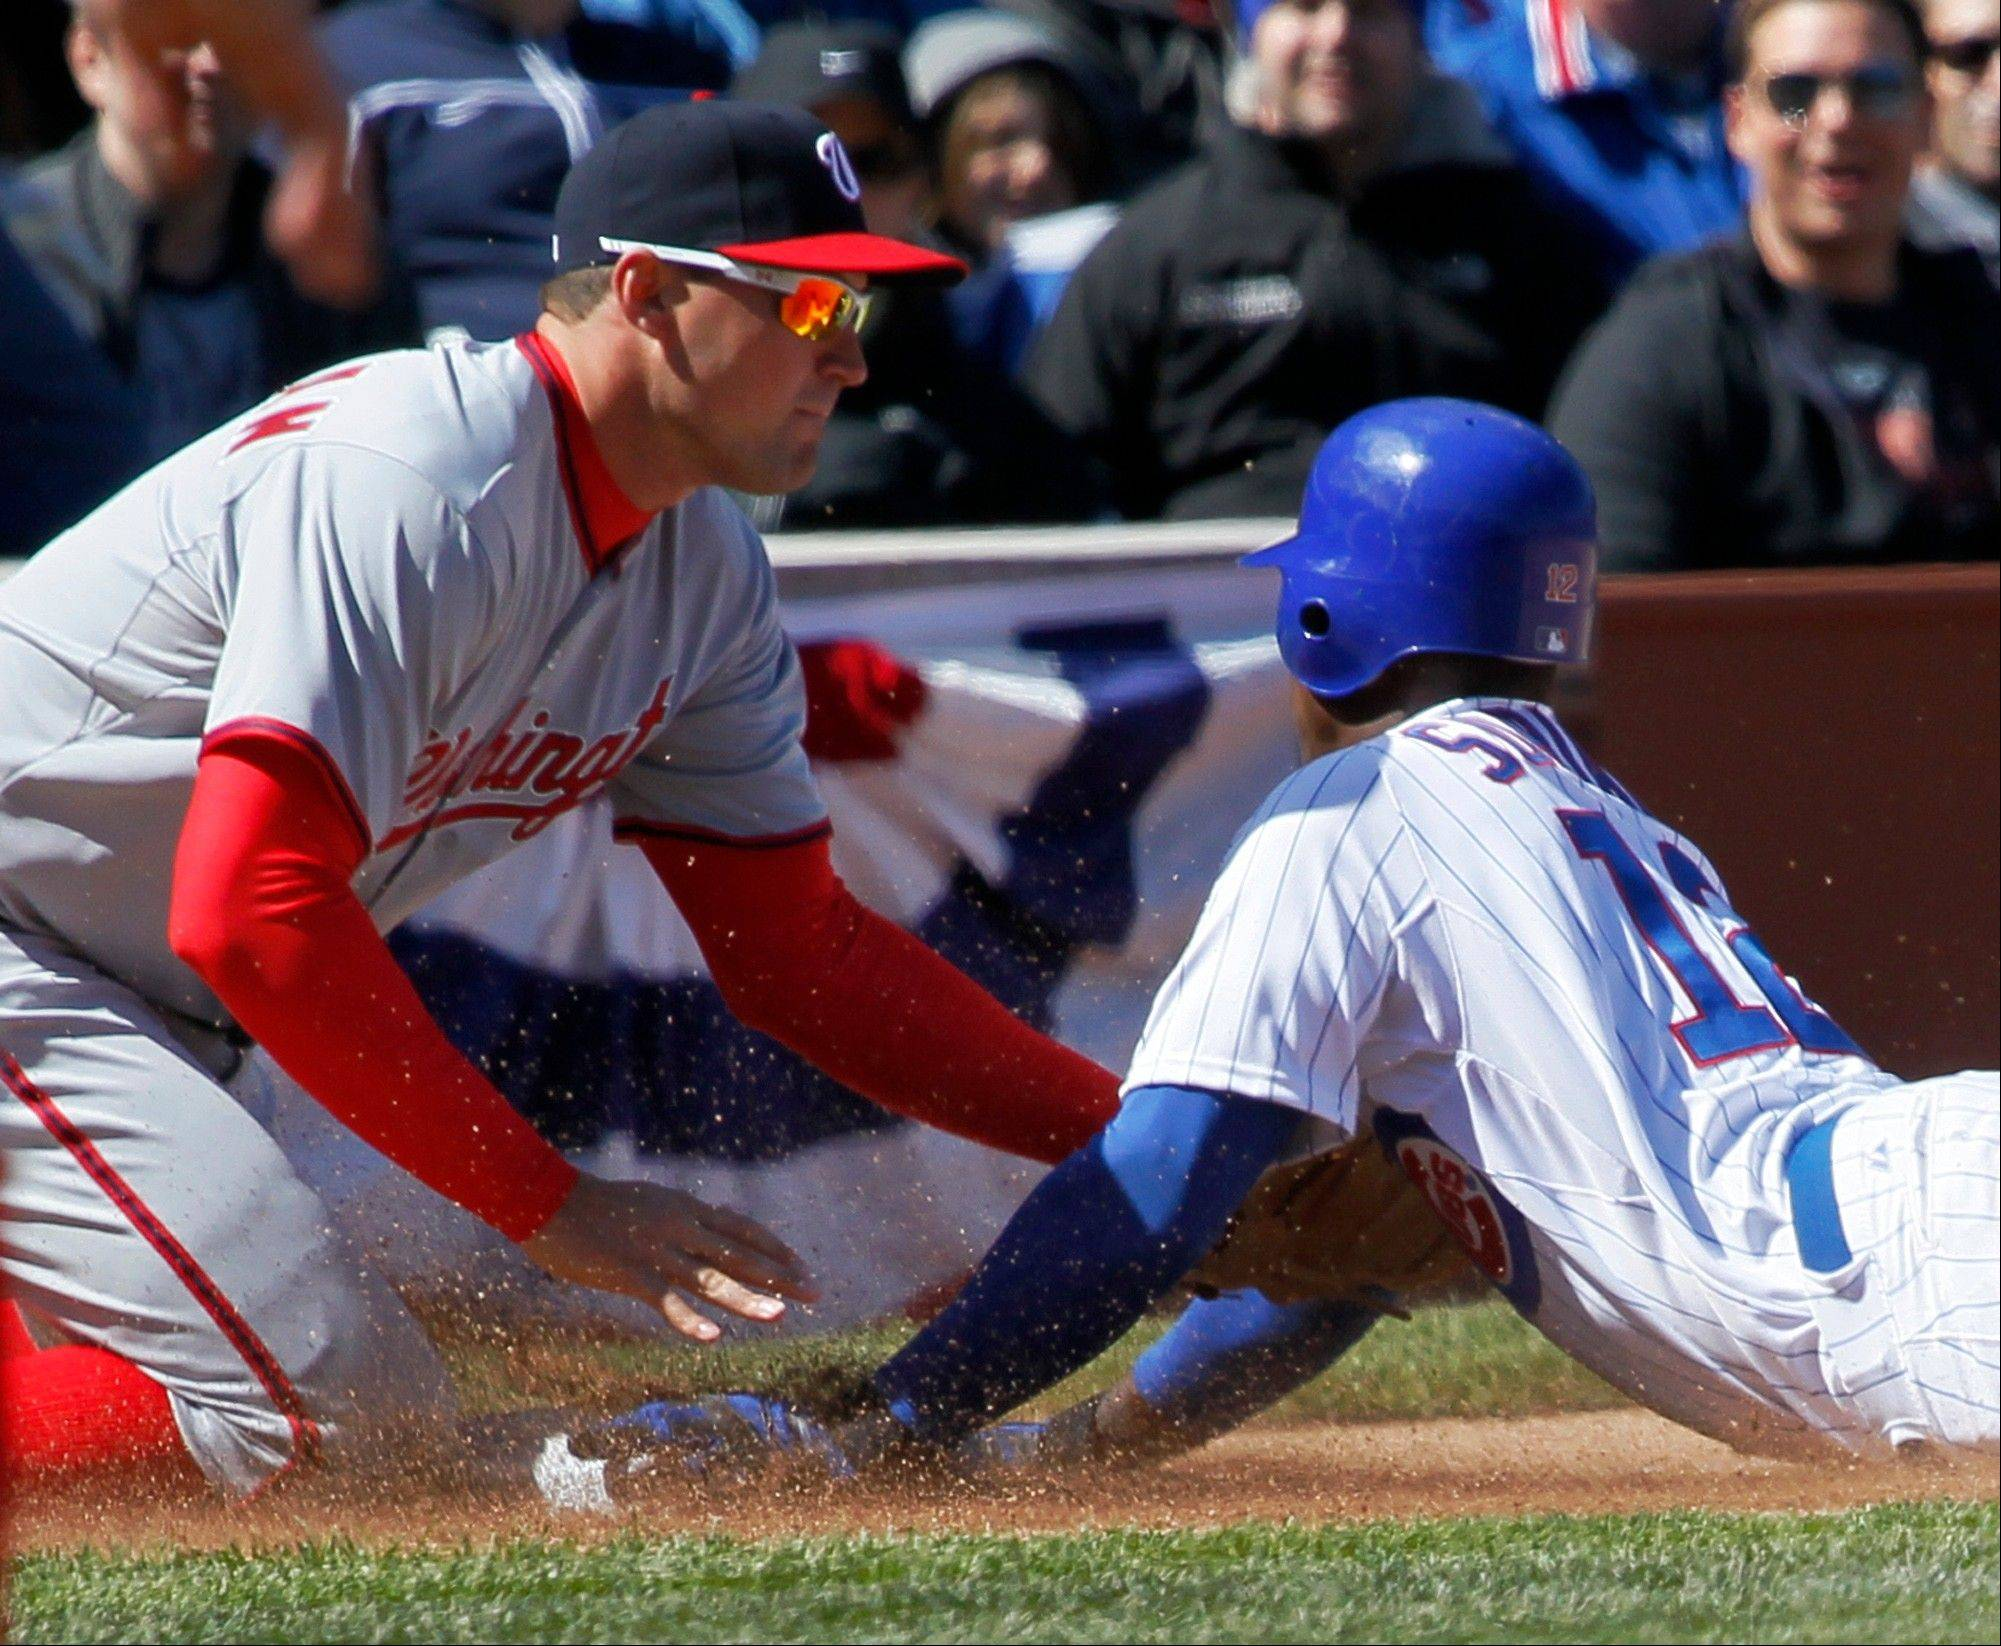 Chicago Cubs' Alfonso Soriano, right, is caught stealing third as Washington Nationals third baseman Ryan Zimmerman applies the tag from the throw of catcher Wilson Ramos in the fourth inning of an opening day baseball game, Thursday, April 5, 2012, in Chicago.